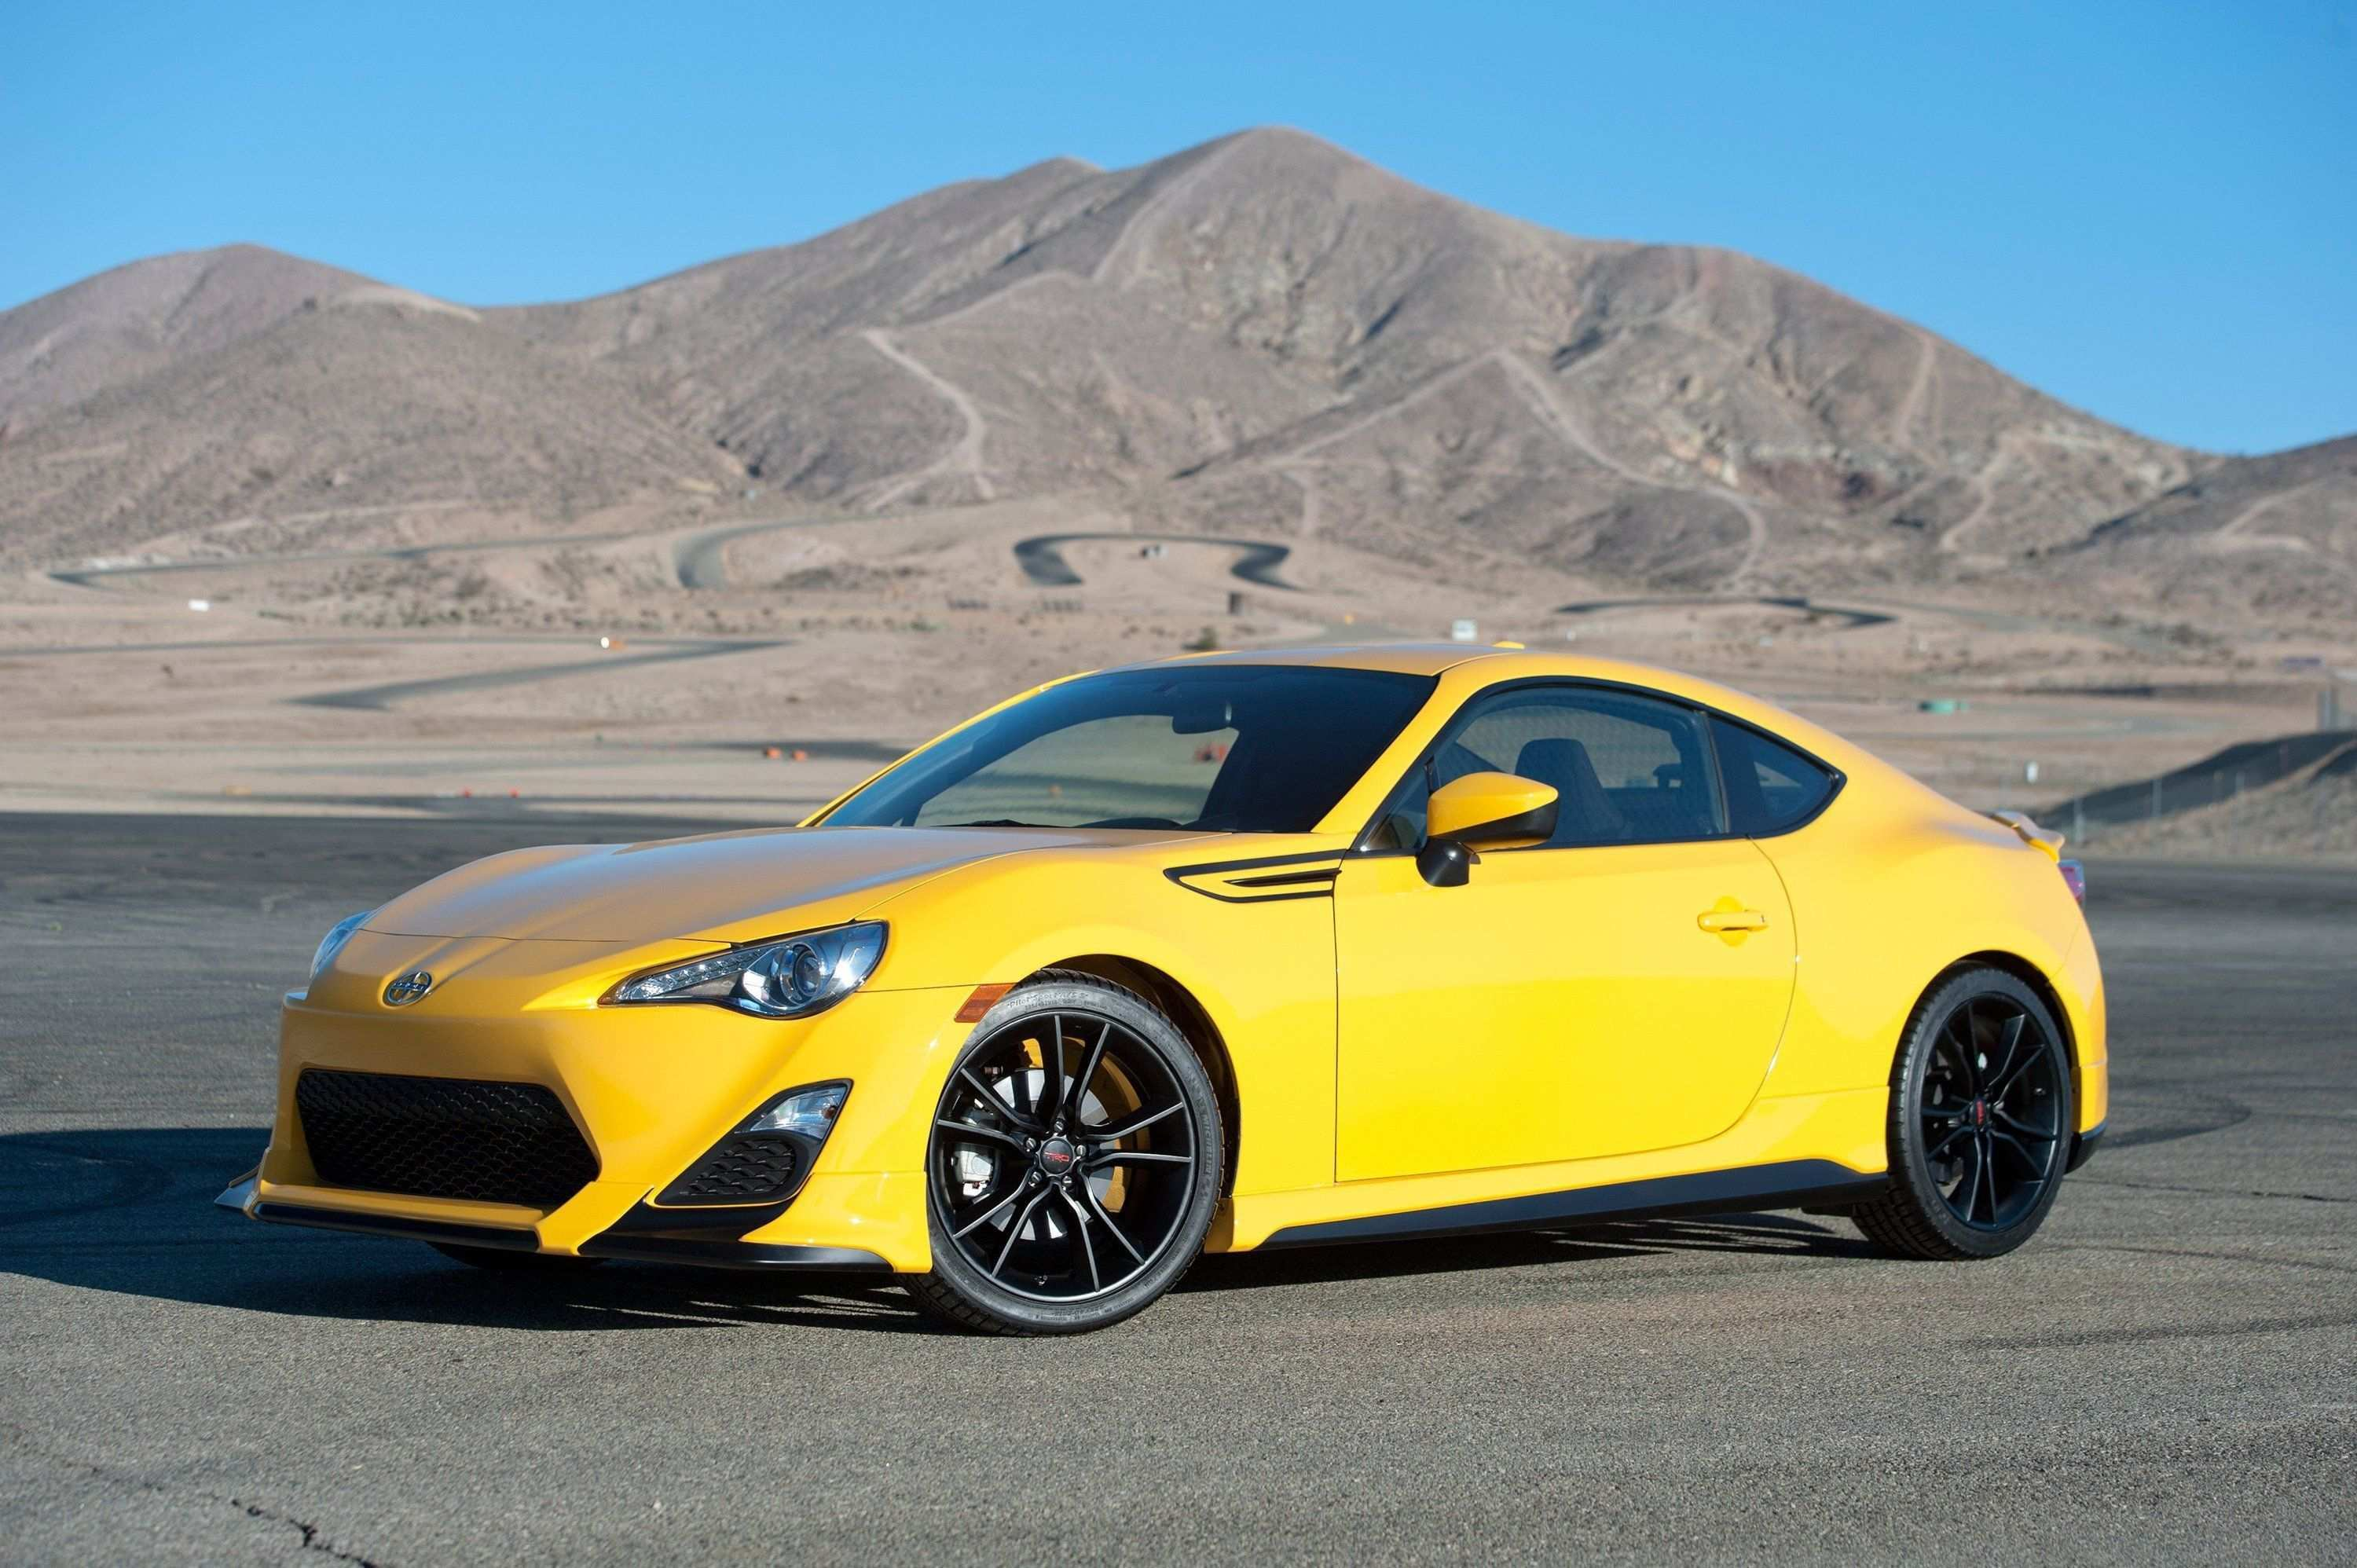 88 Concept of 2020 Scion Frs New Review for 2020 Scion Frs